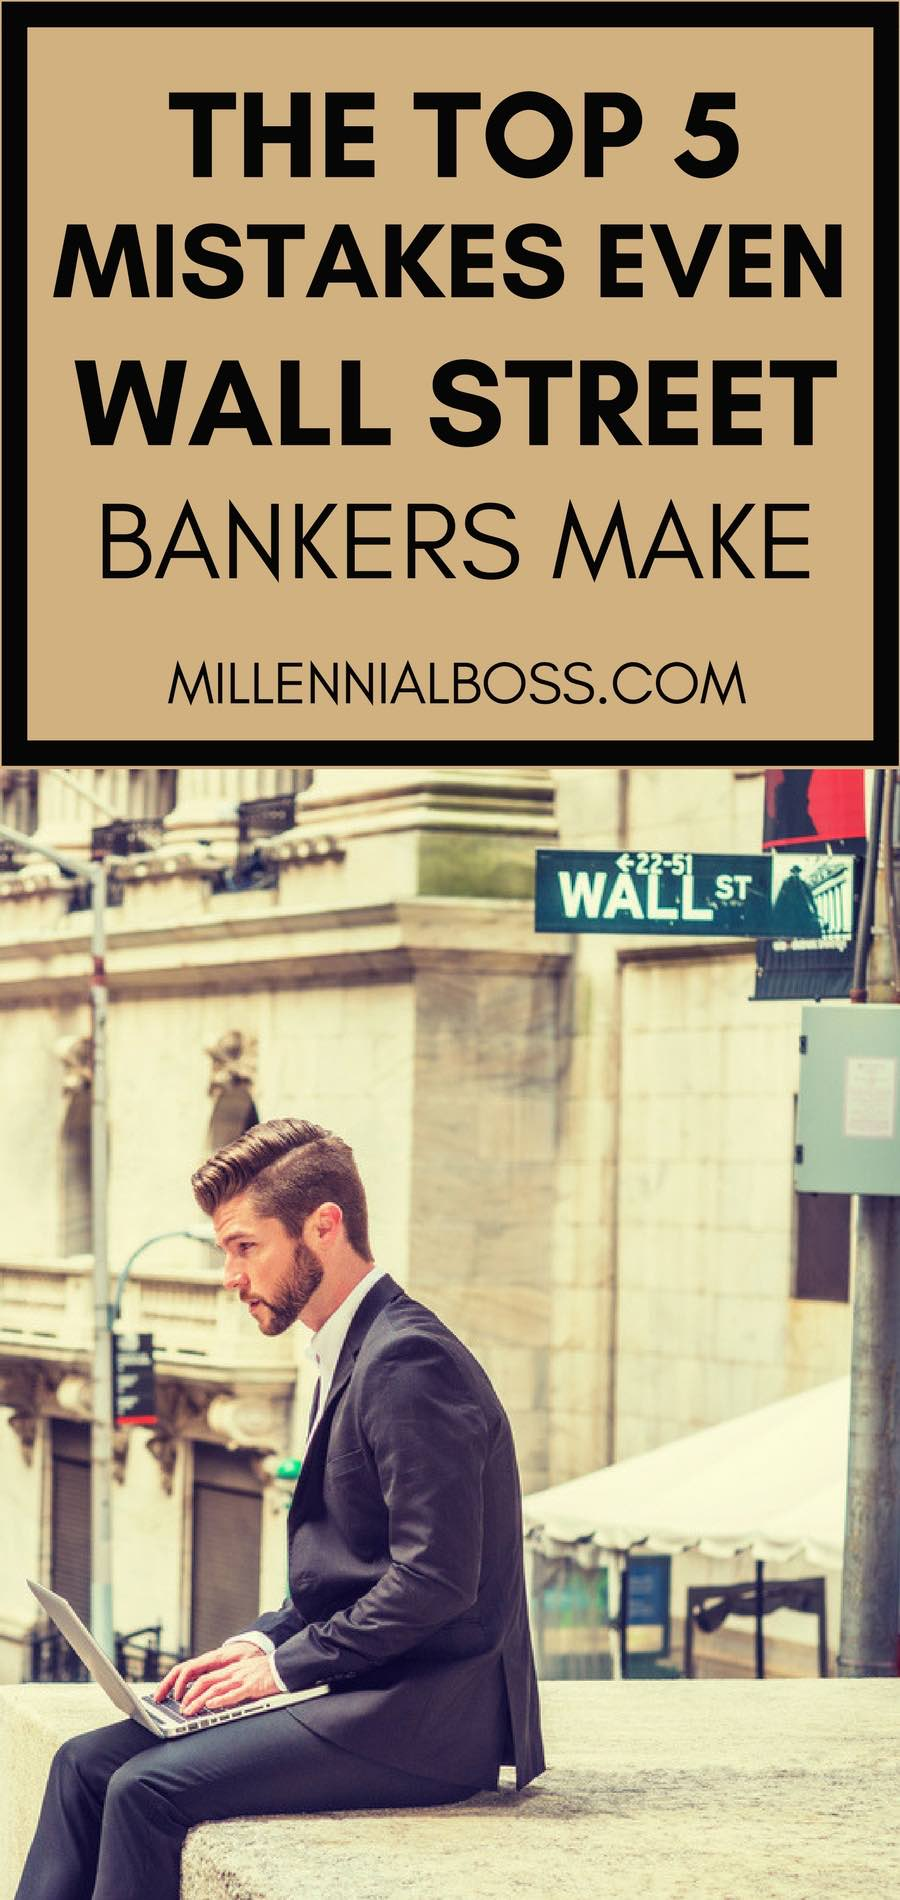 MISTAKES Wall Street BANKERS | INVESTMENT BANKING